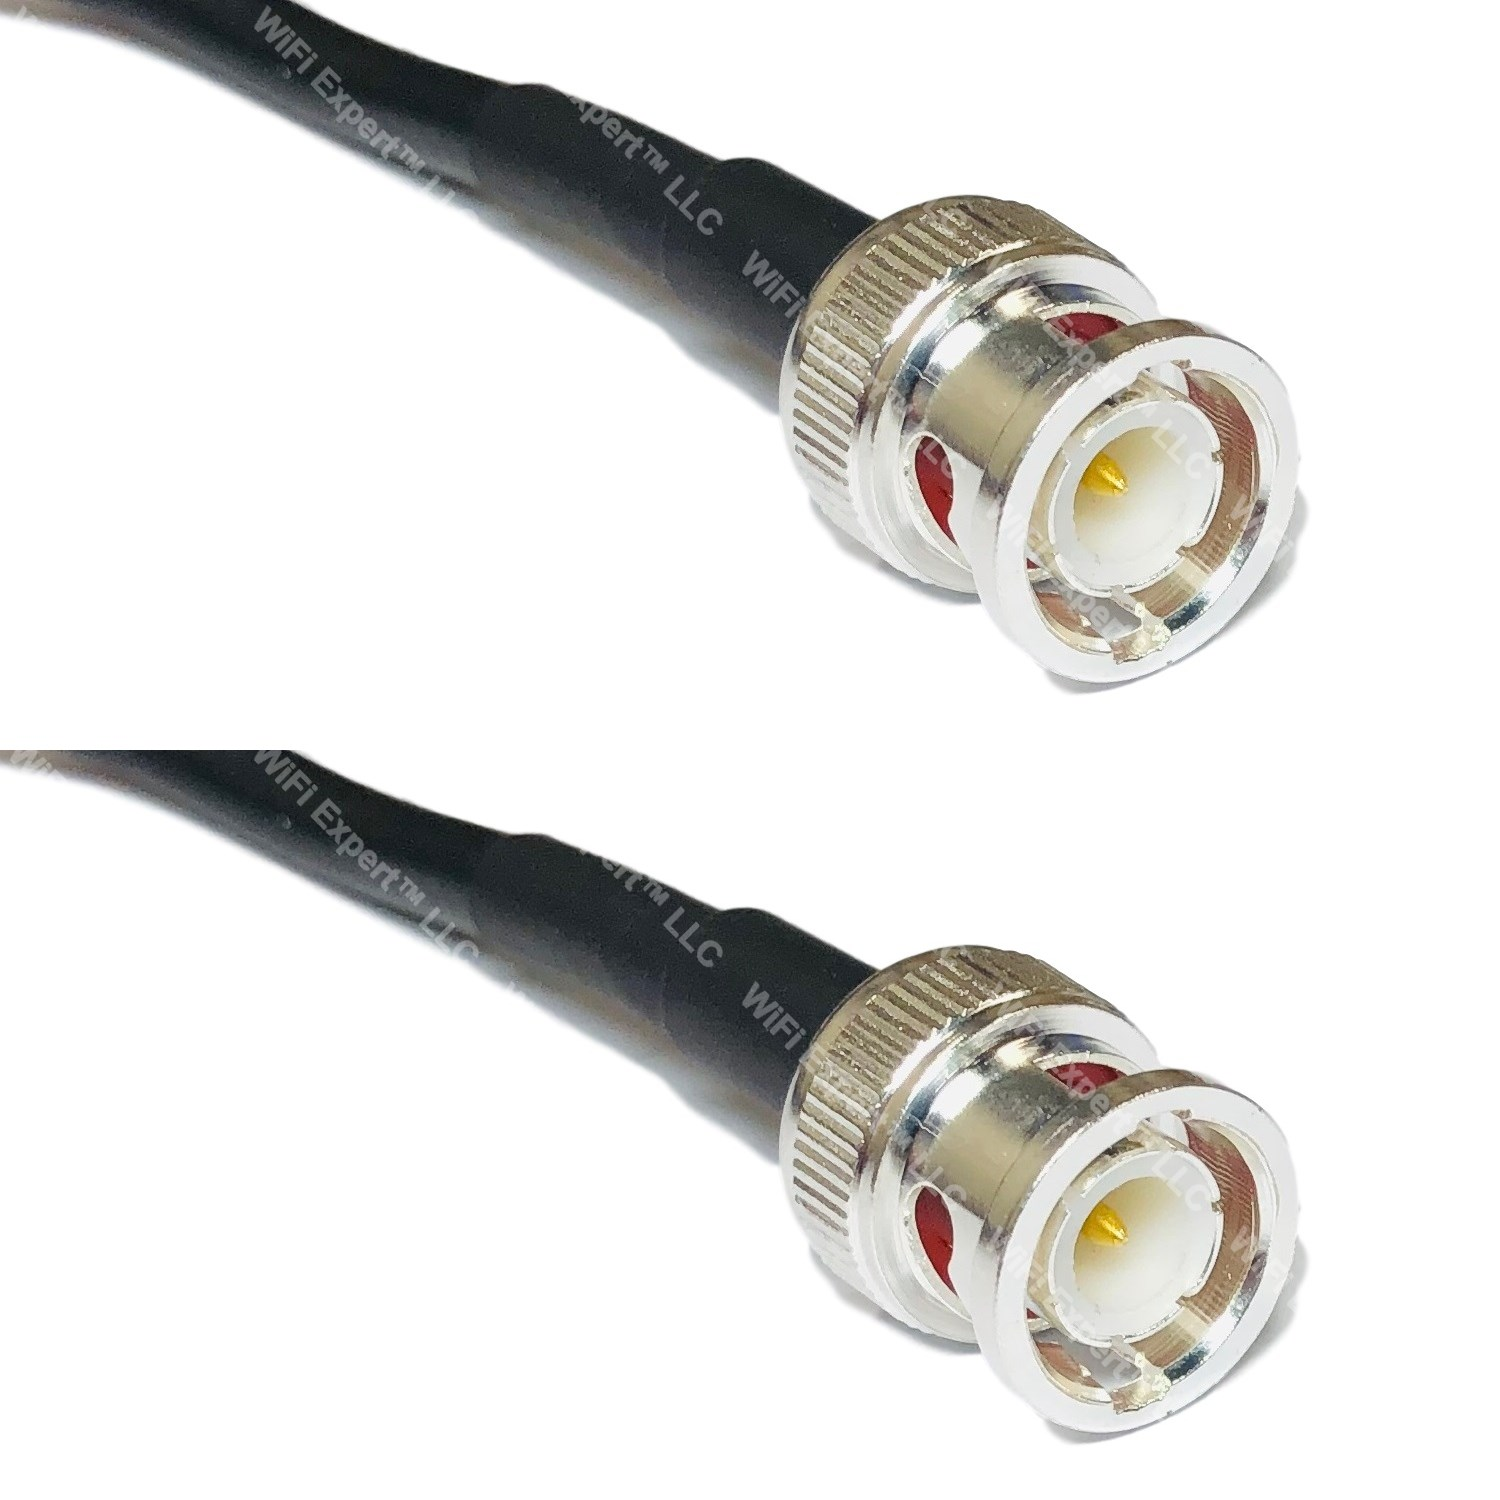 LMR240UF Silver N MALE to BNC MALE Coax RF Cable USA Lot